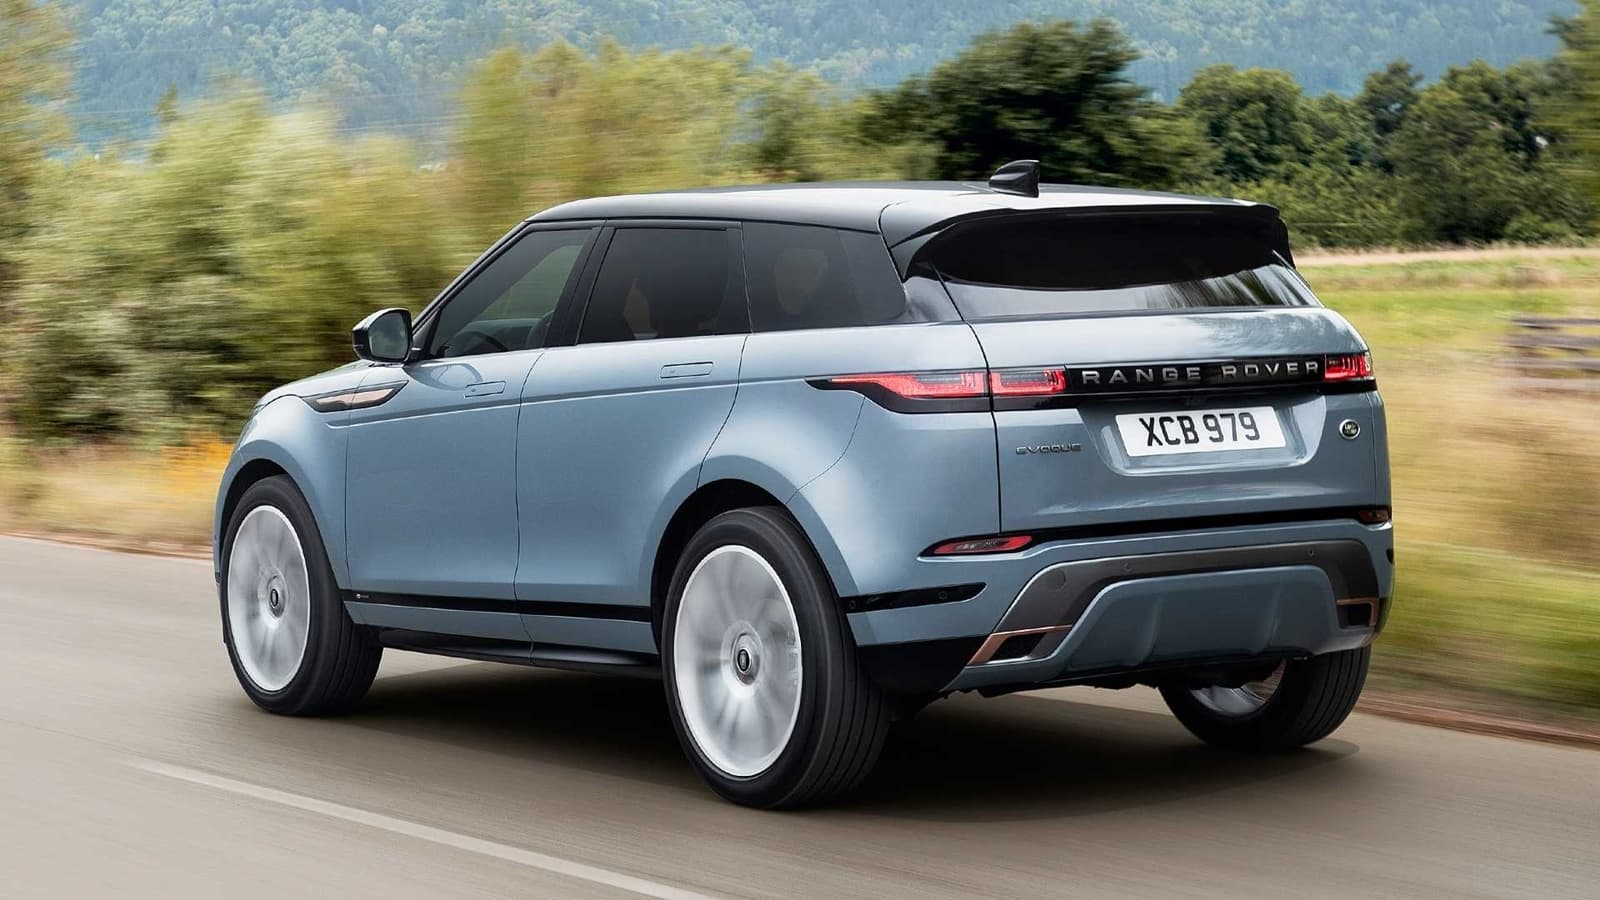 el range rover evoque 2019 m s barato ser di sel y. Black Bedroom Furniture Sets. Home Design Ideas